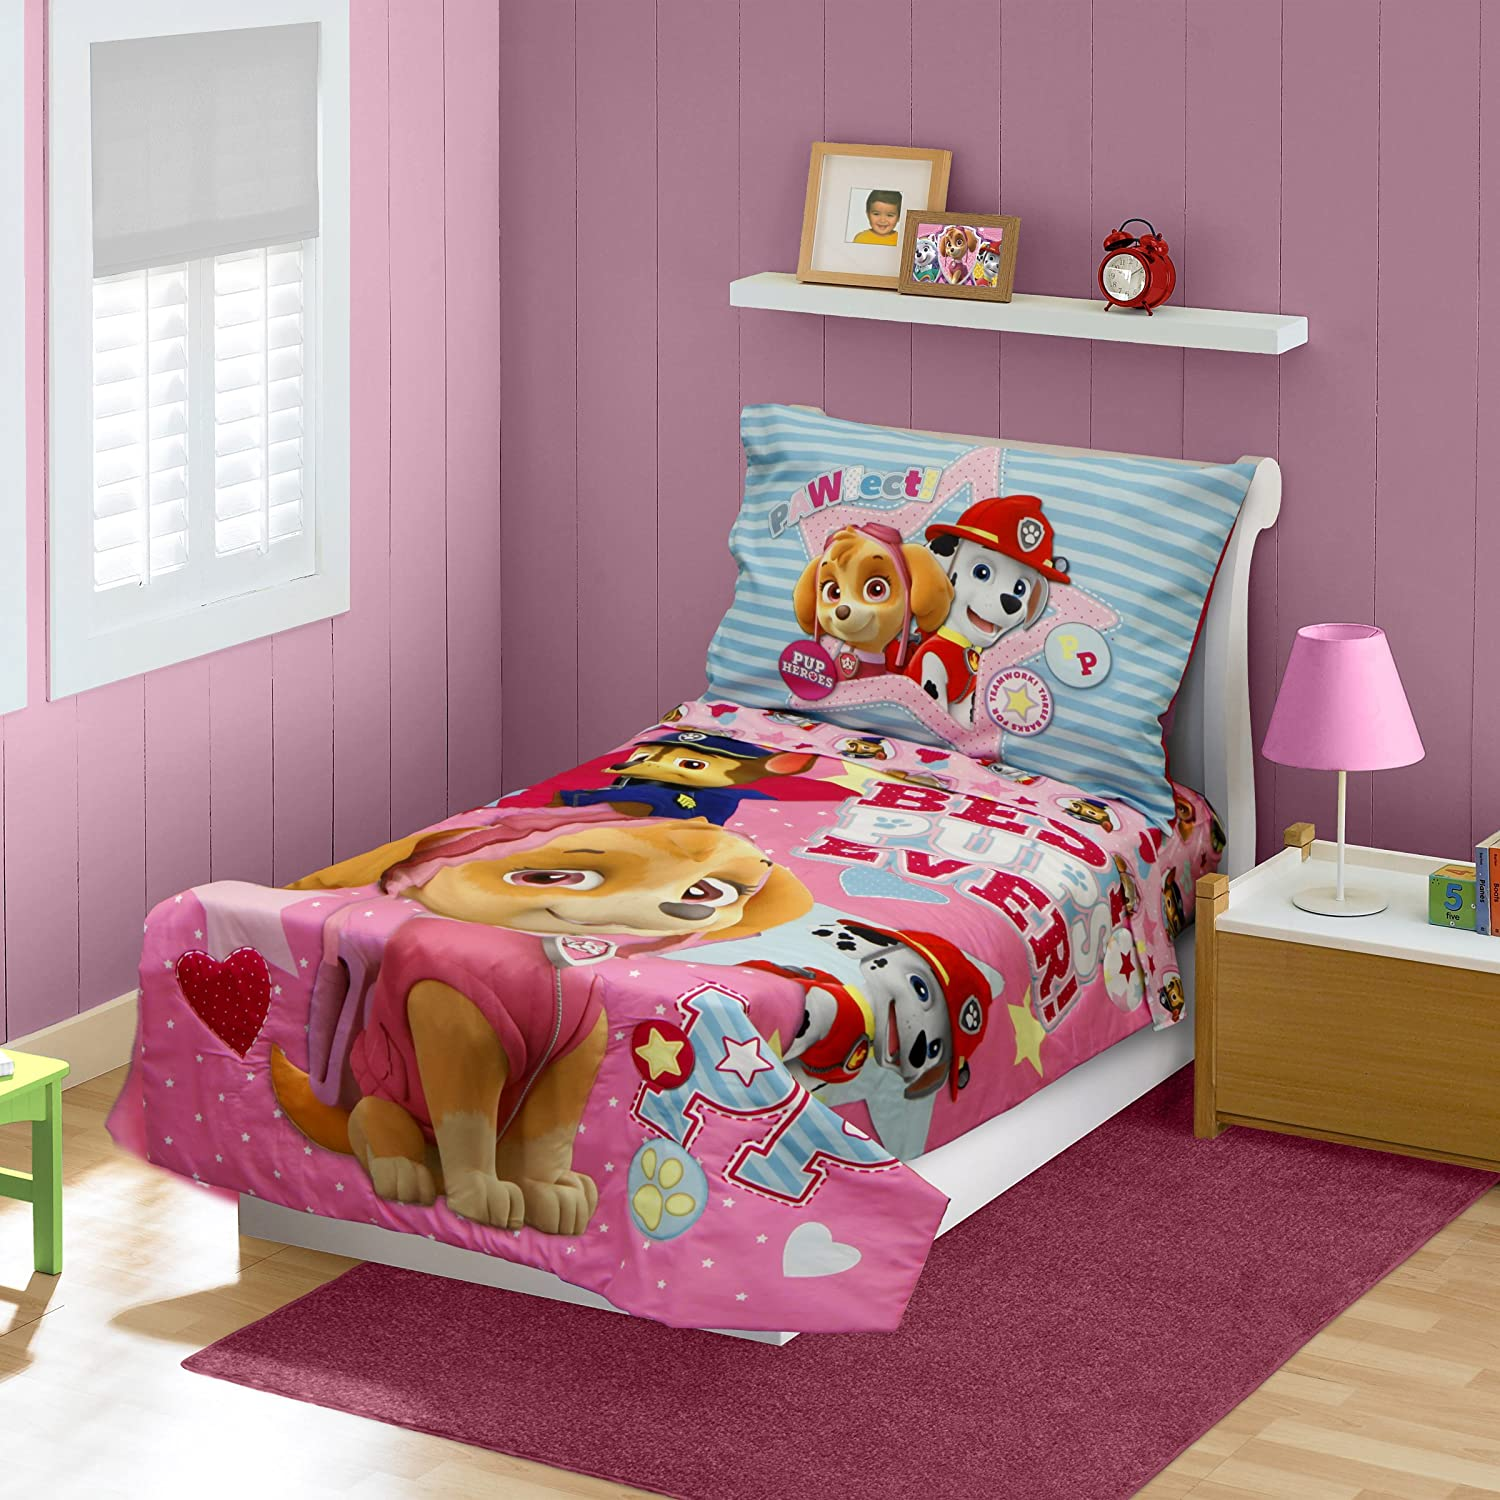 Paw Patrol Skye Best Pups Ever 4 Piece Toddler Bed Set, Pink